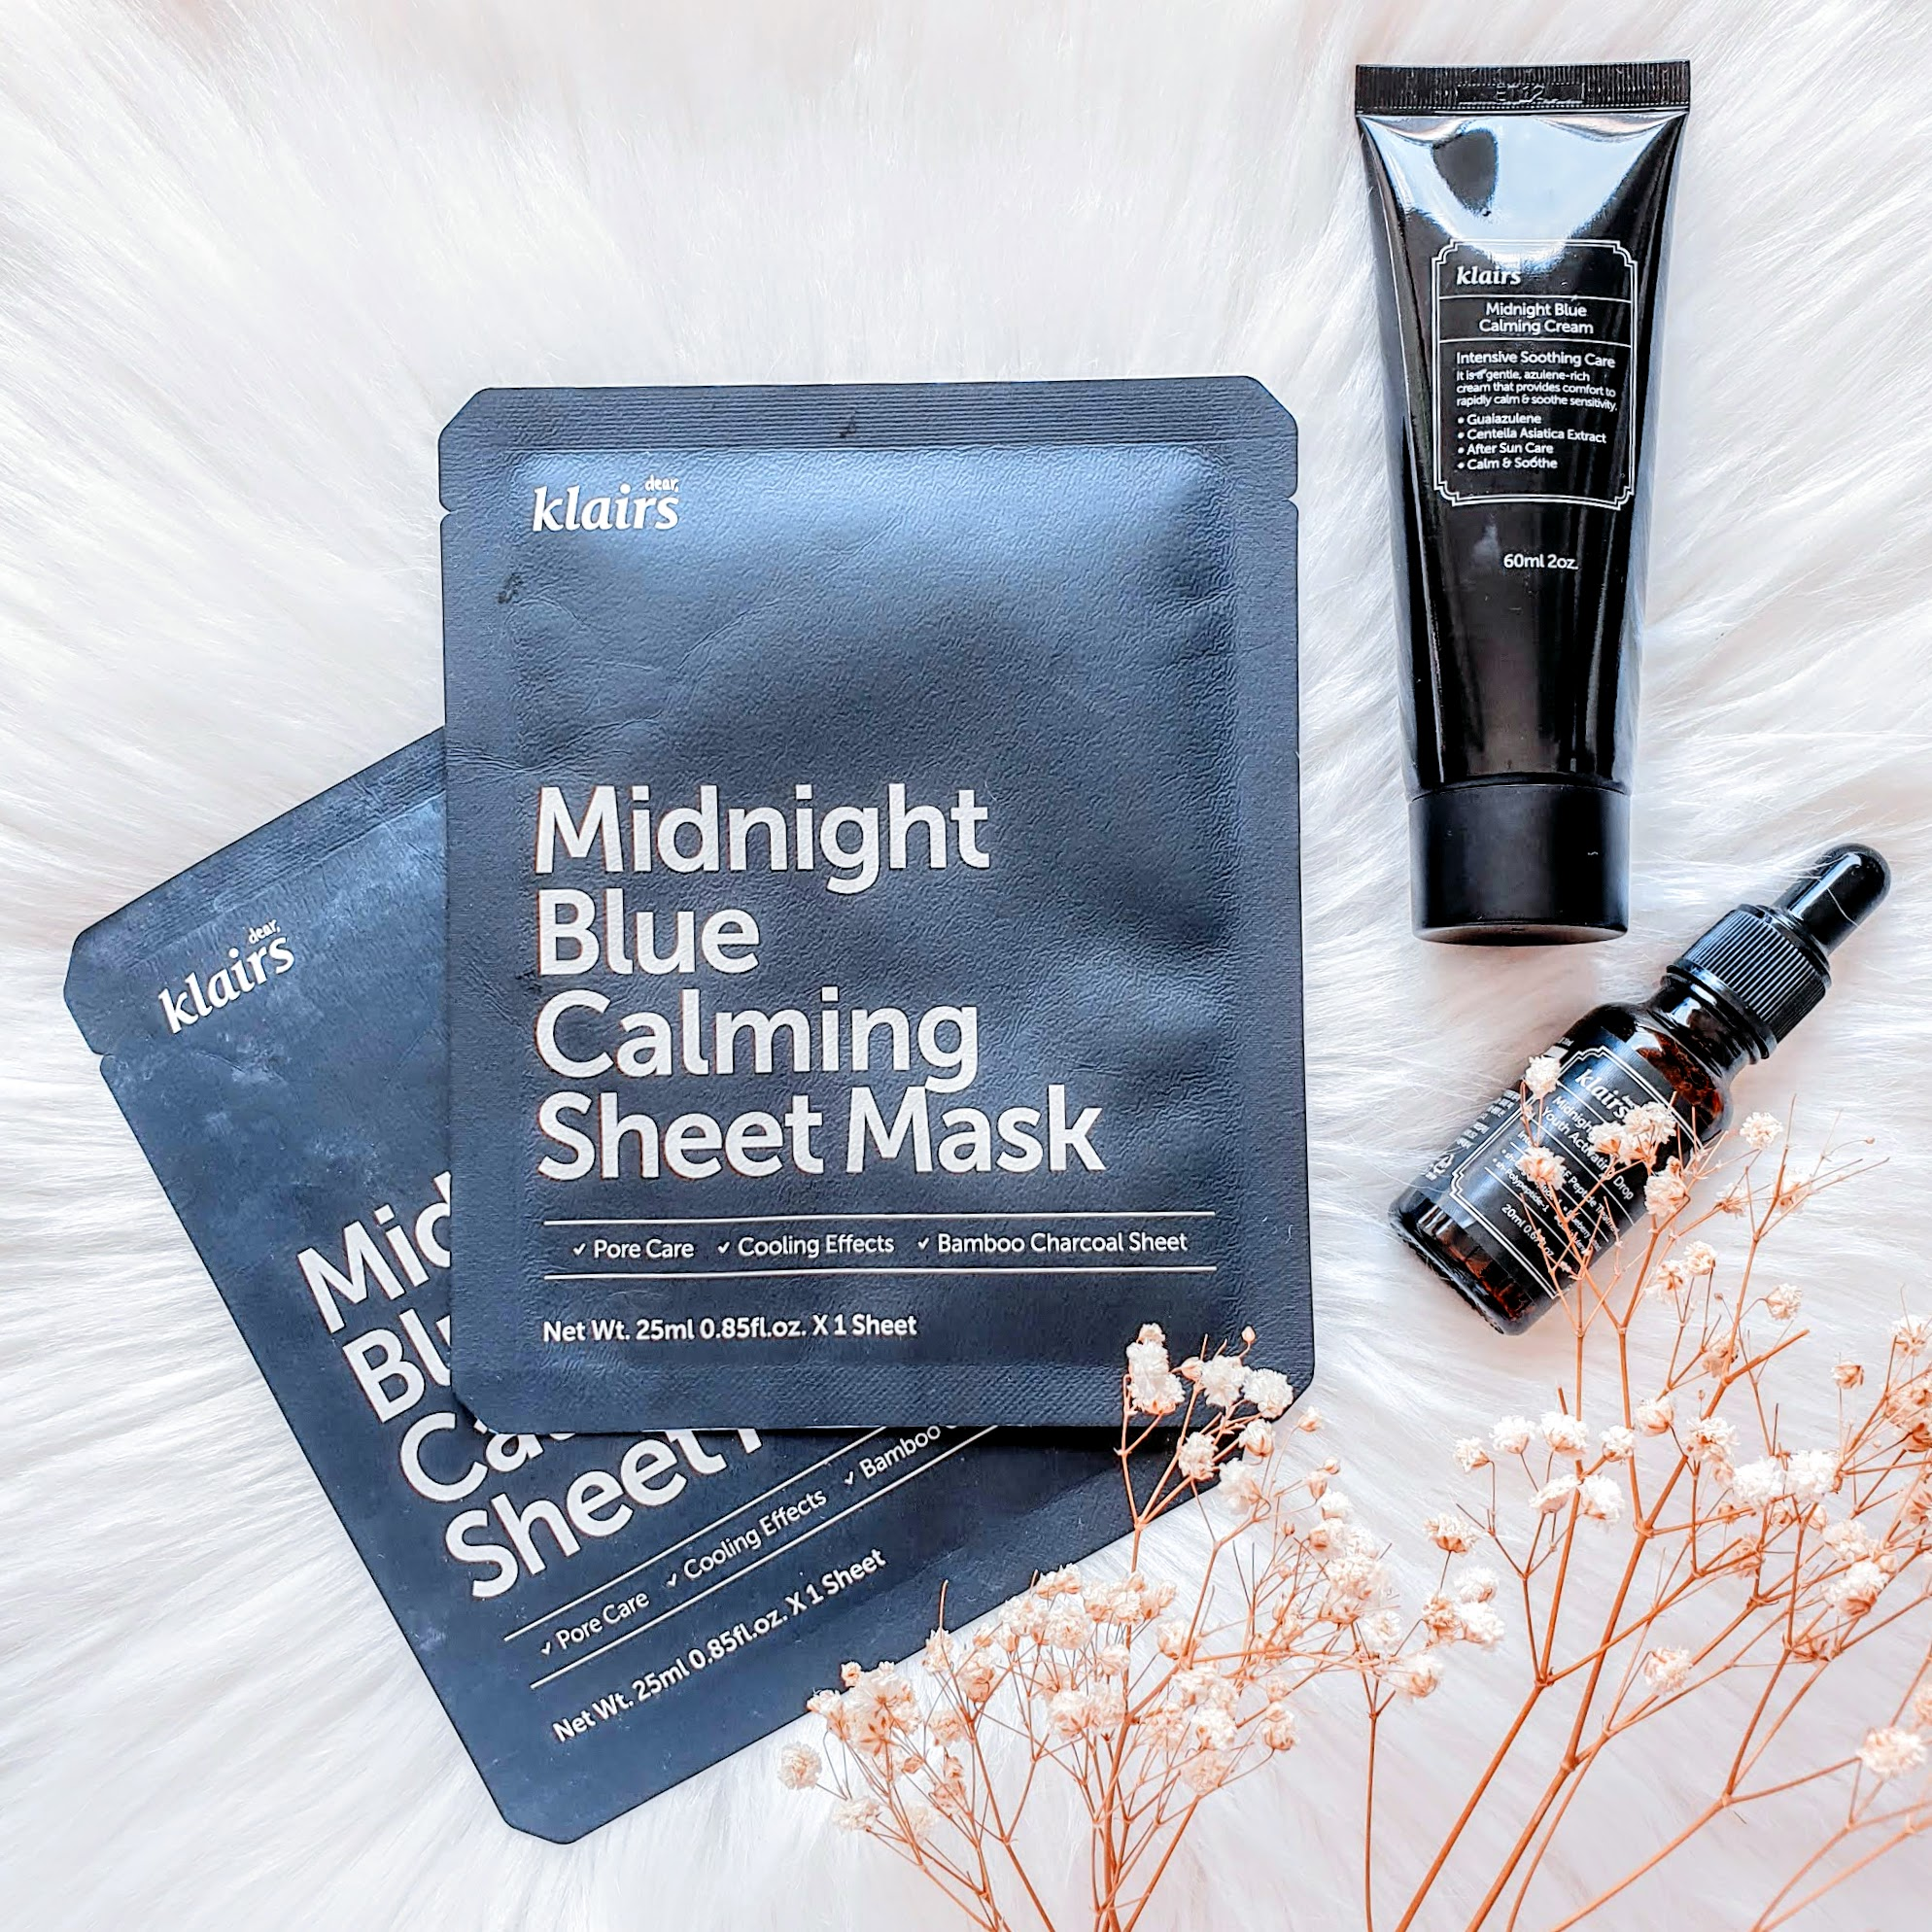 REVIEW | Klairs Midnight Blue Calming Sheet Mask